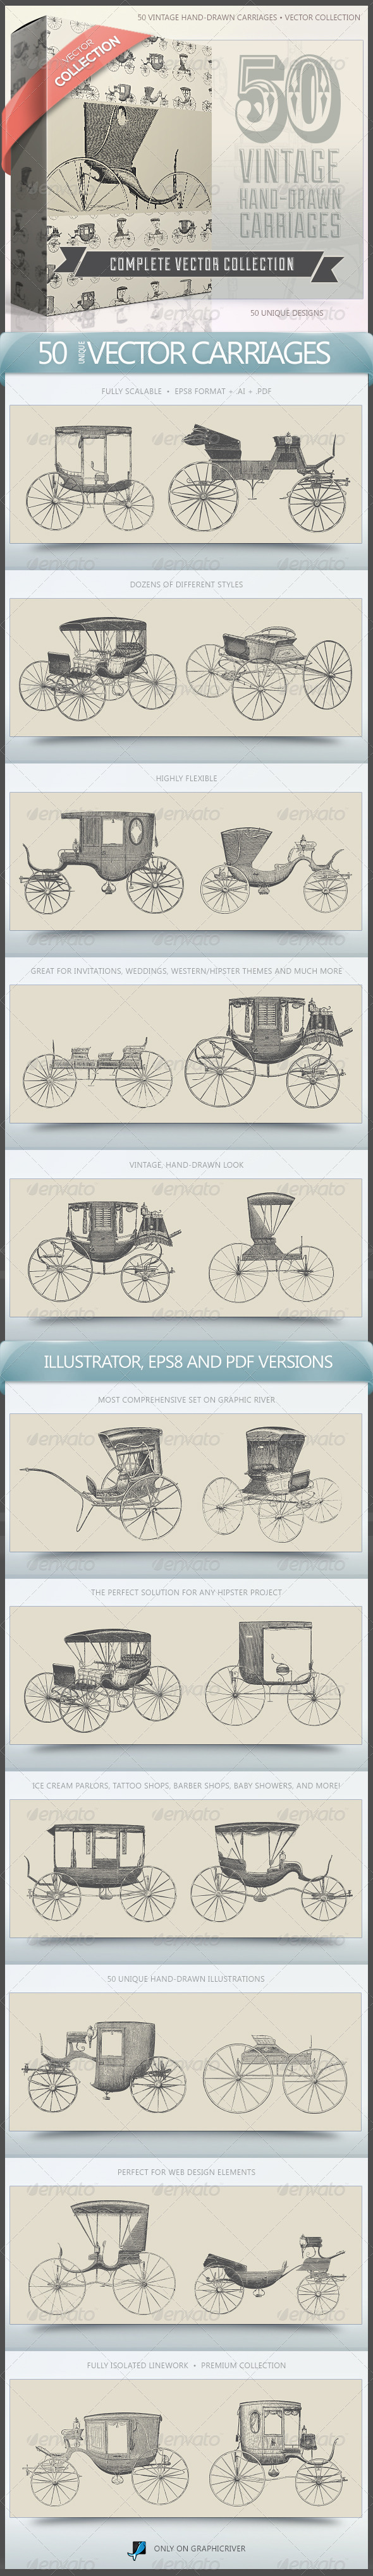 GraphicRiver 50 Vintage Hand-Drawn Carriages Collection 5699365